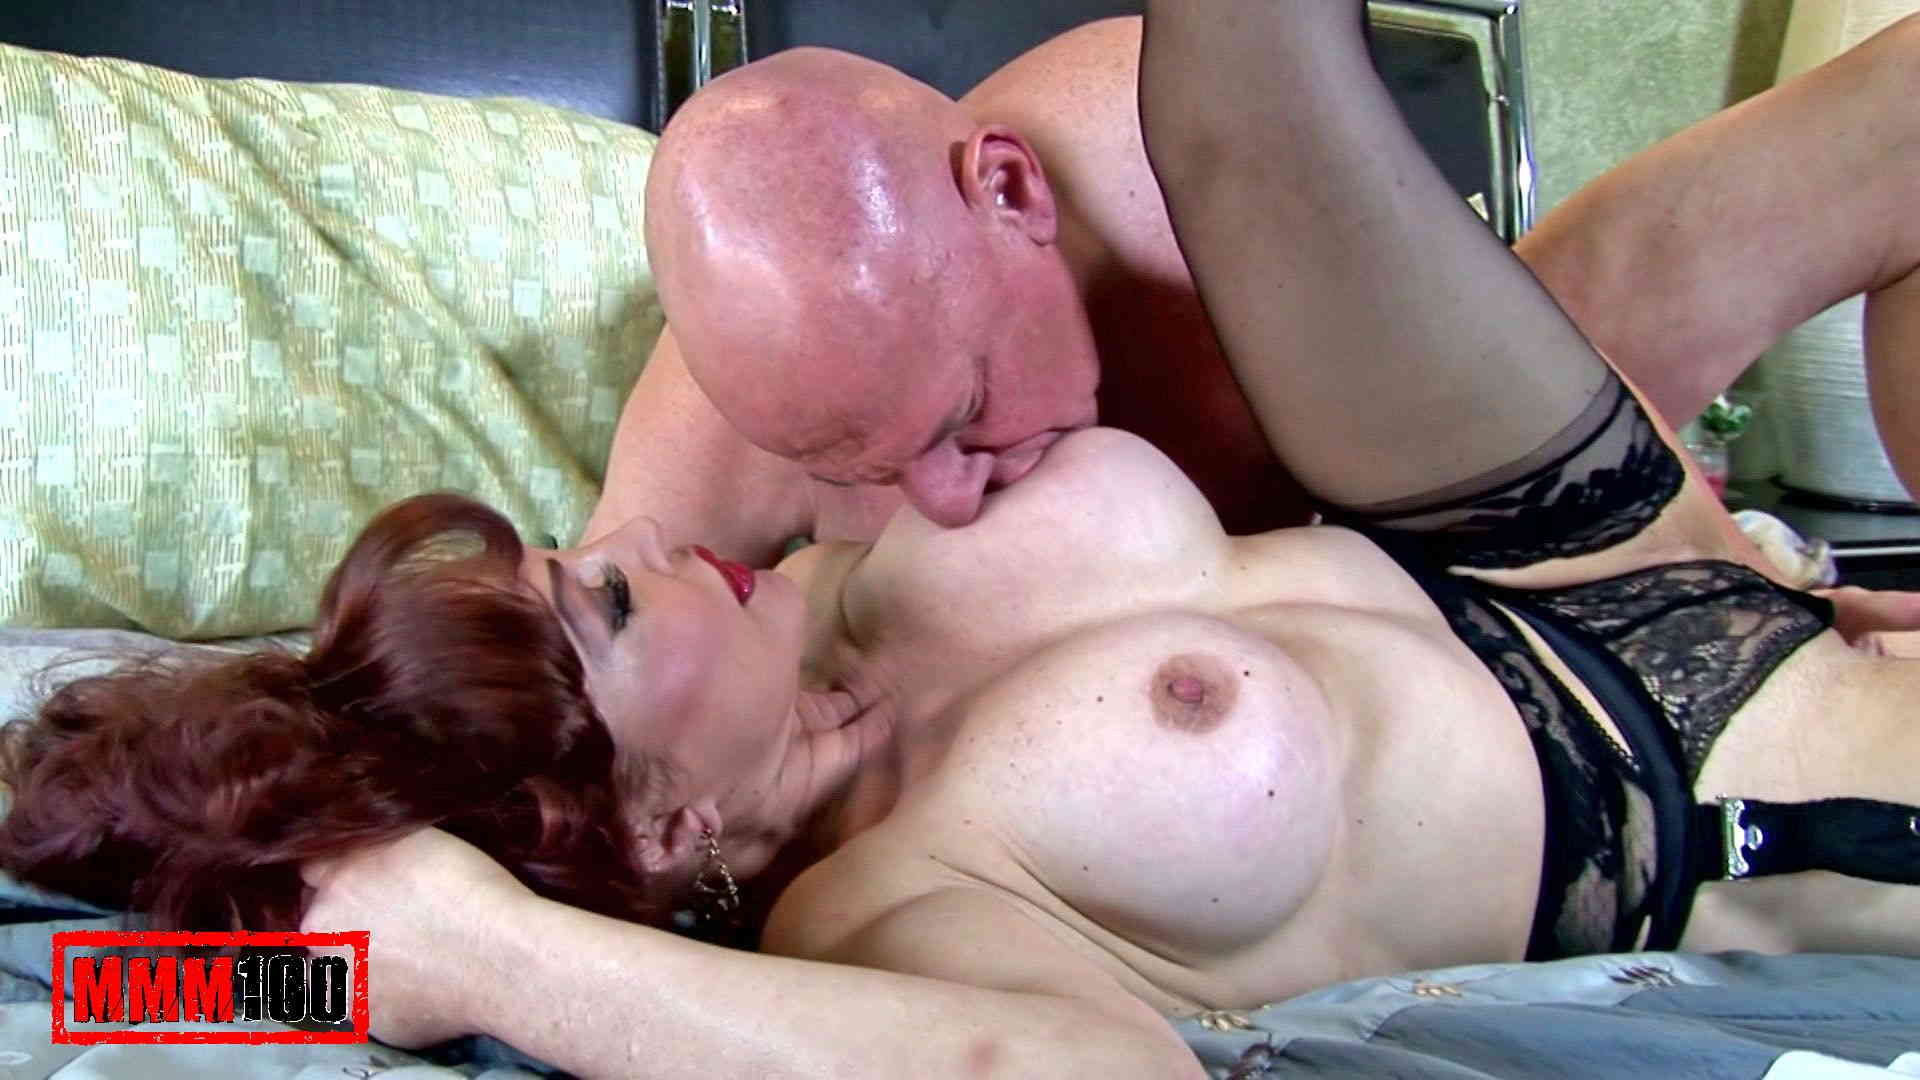 karala school sex naked